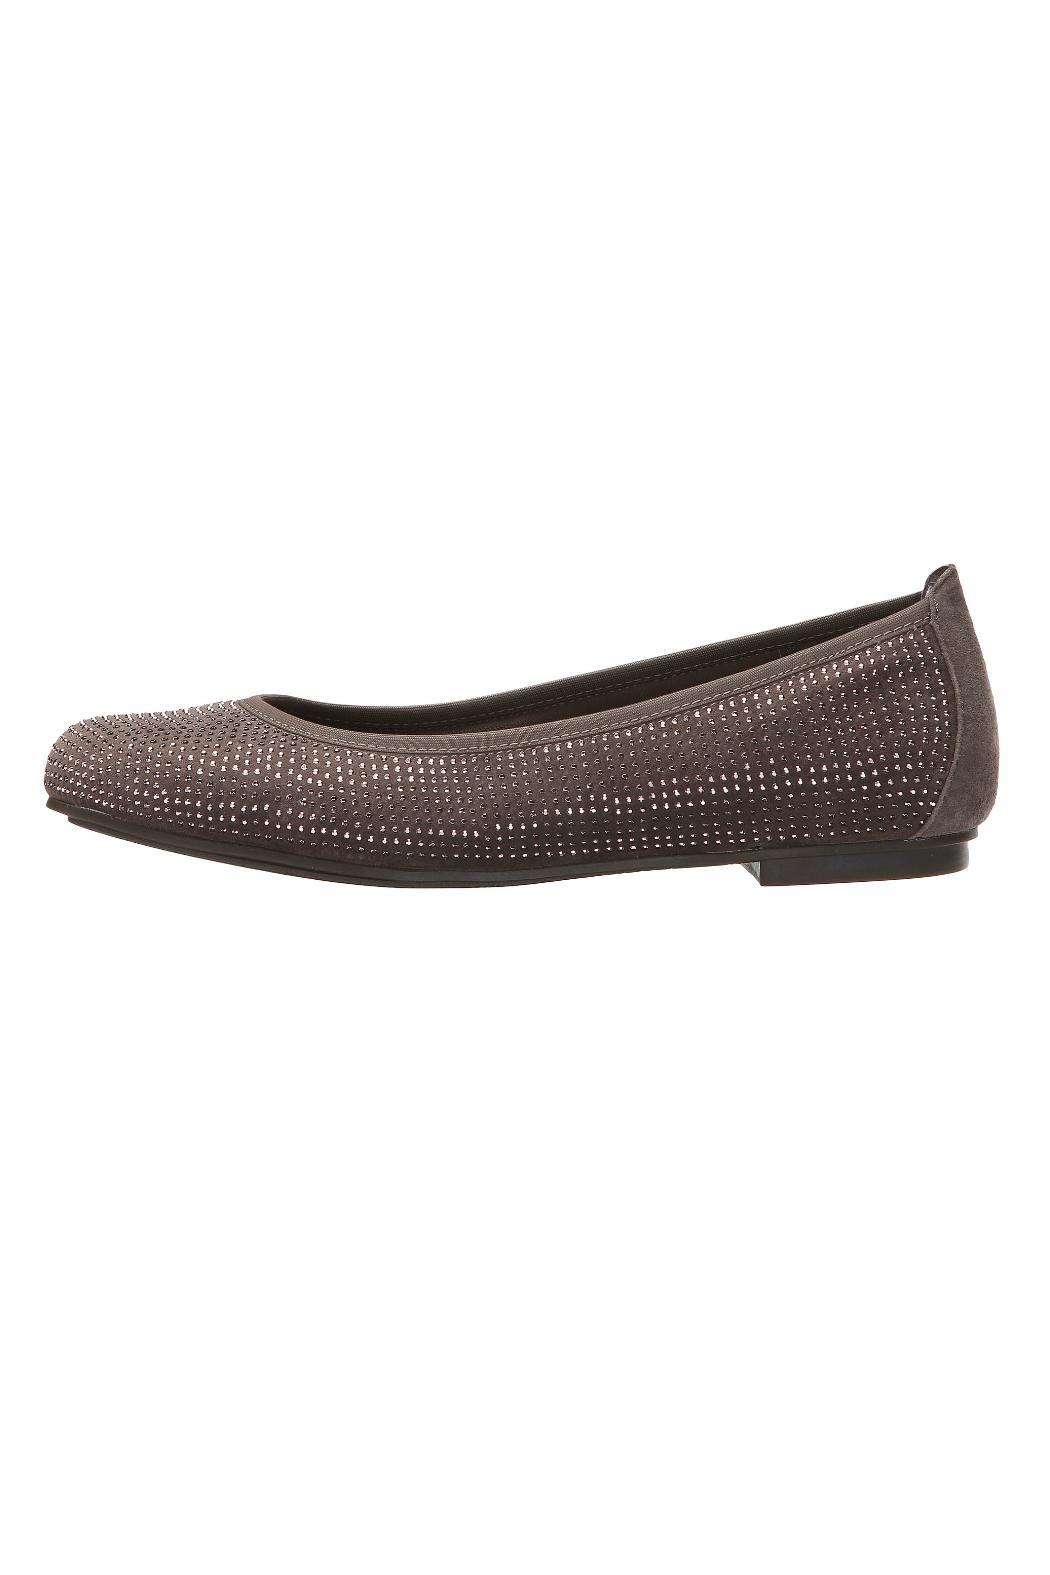 Spark Willow Flat